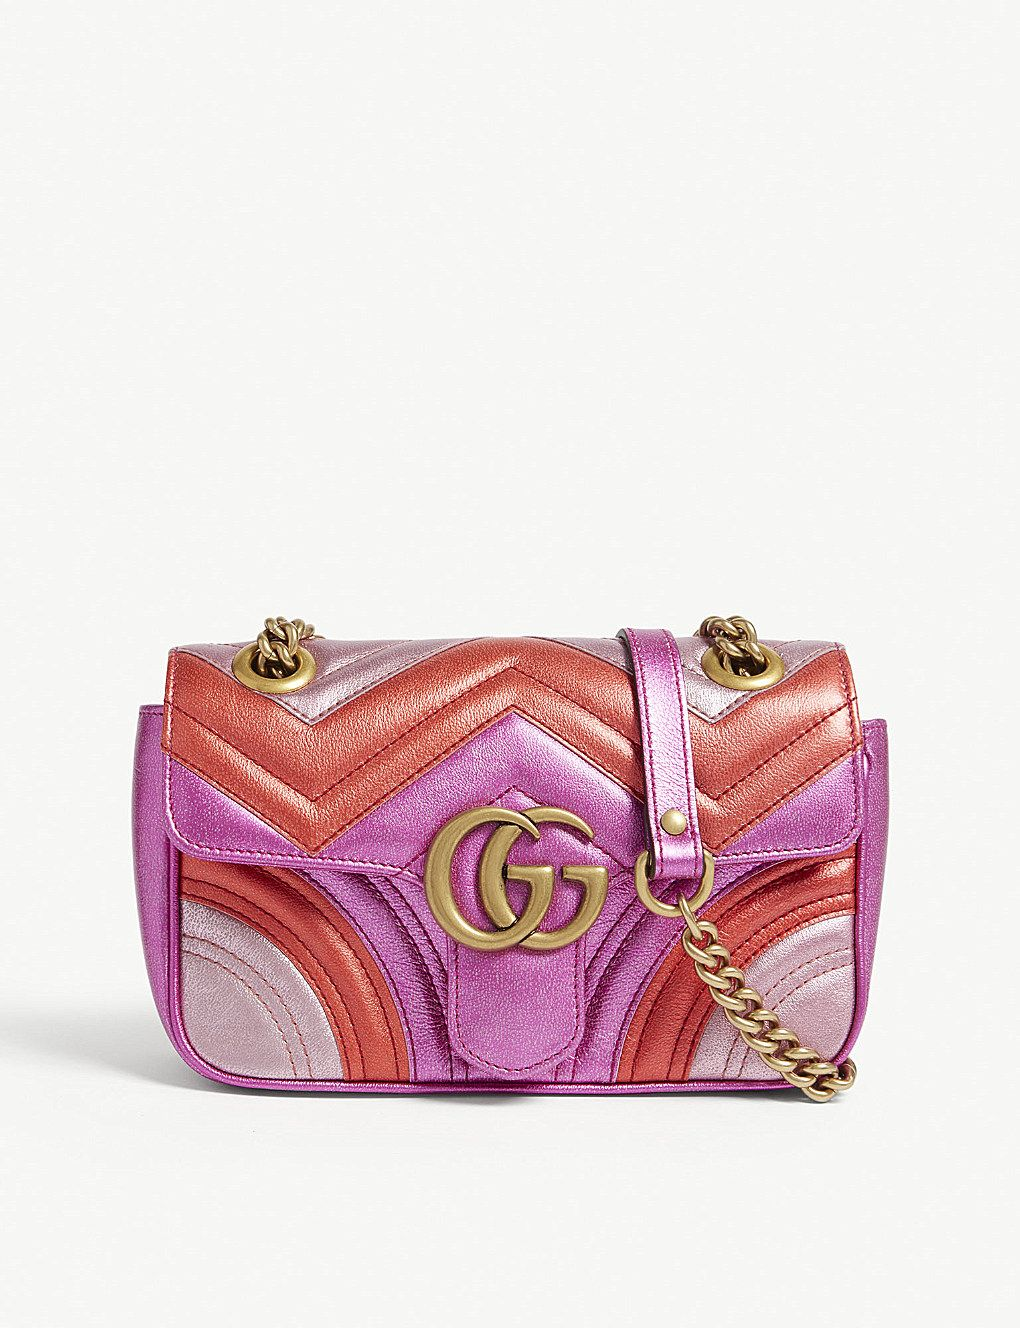 fb737a12a4b4bf GUCCI Metallic Marmont shoulder bag in 2019 | My style! My makeup ...